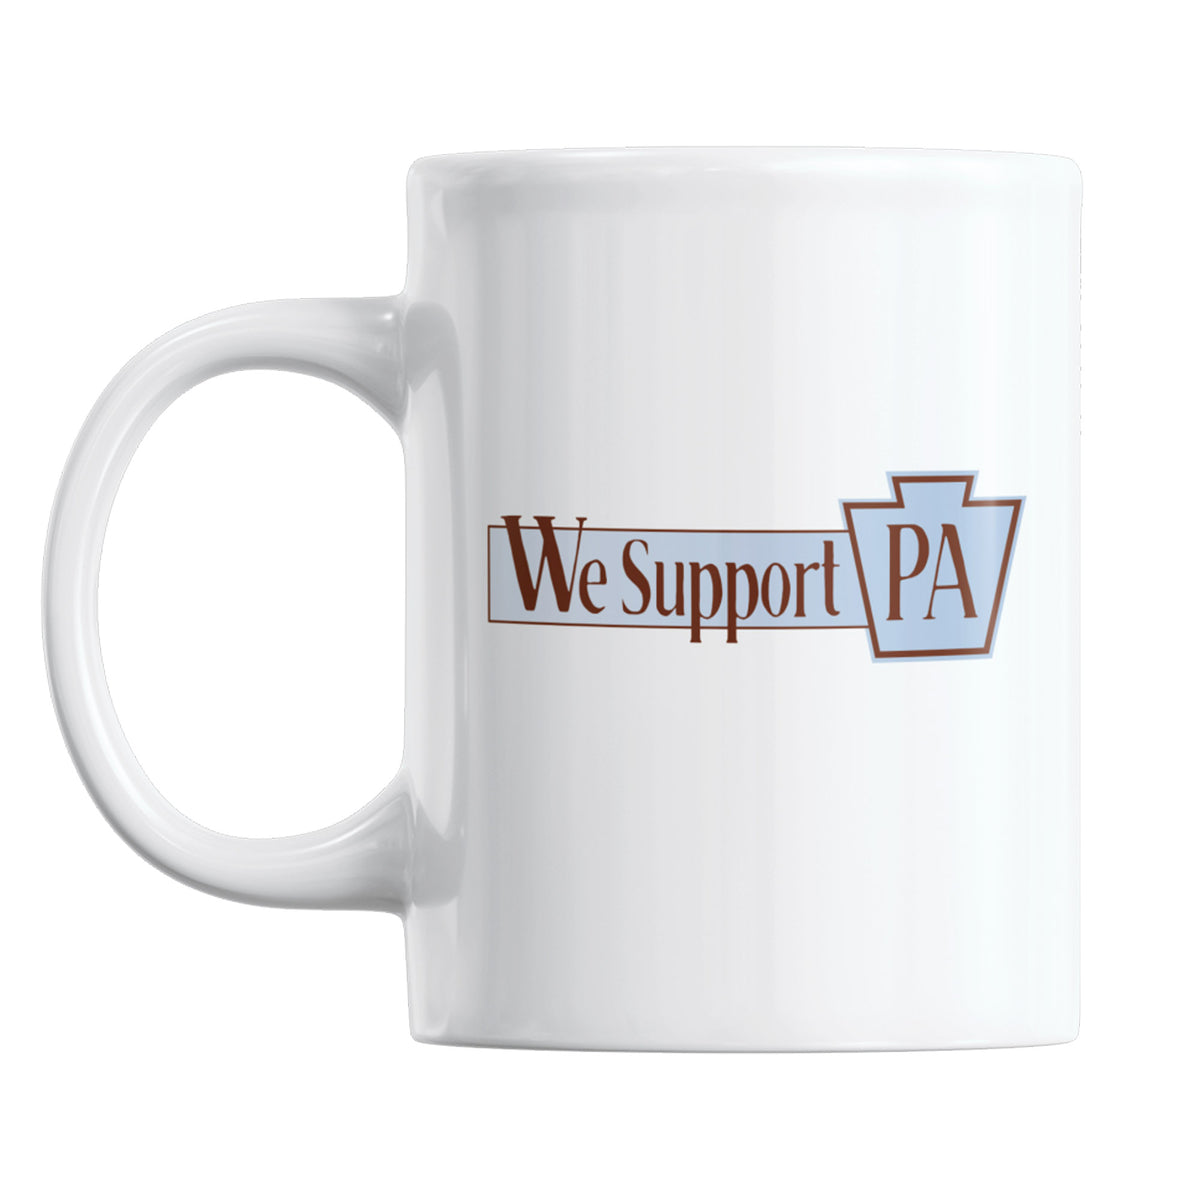 Pottstown Area Library We Support PA Coffee Mug